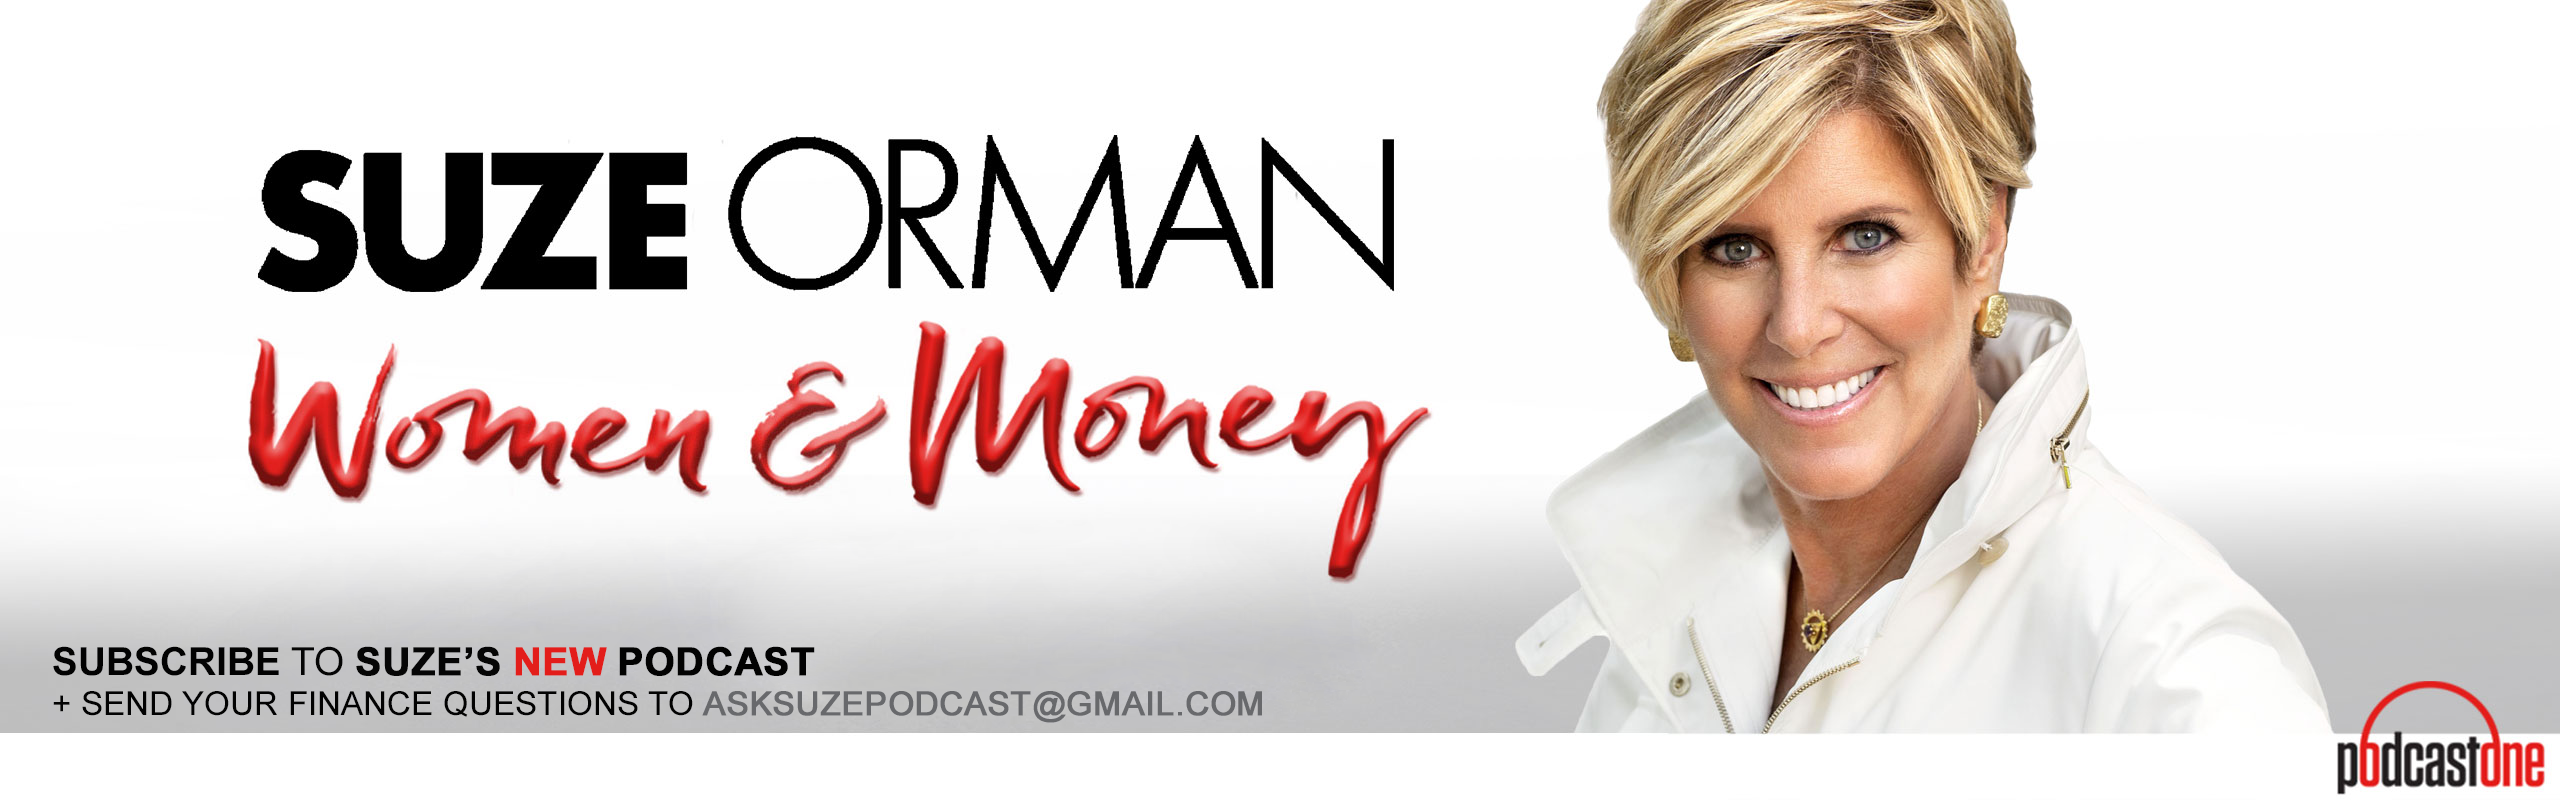 Suze orman personal financial guru can i afford it suze orman show next solutioingenieria Image collections